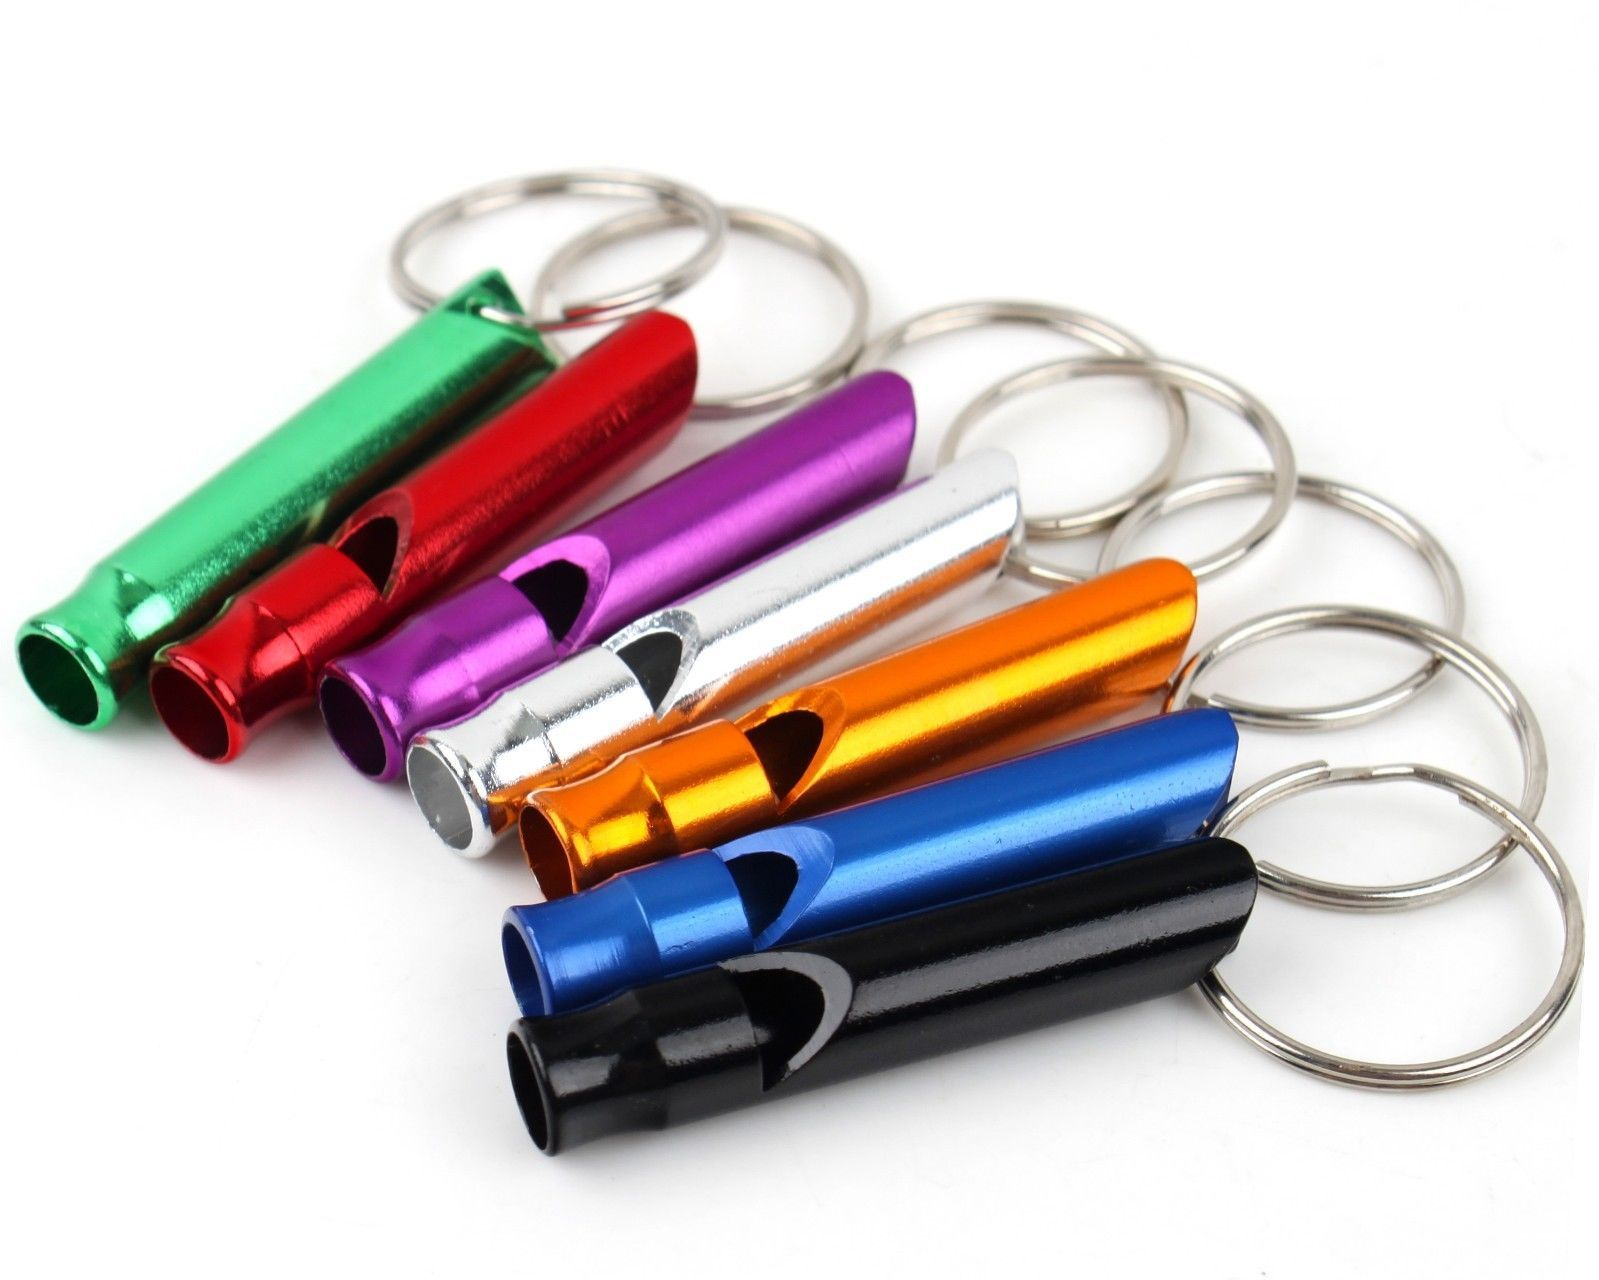 10X Alloy Aluminum Emergency Survival Whistle Outdoor Camping Hiking Keychain UK